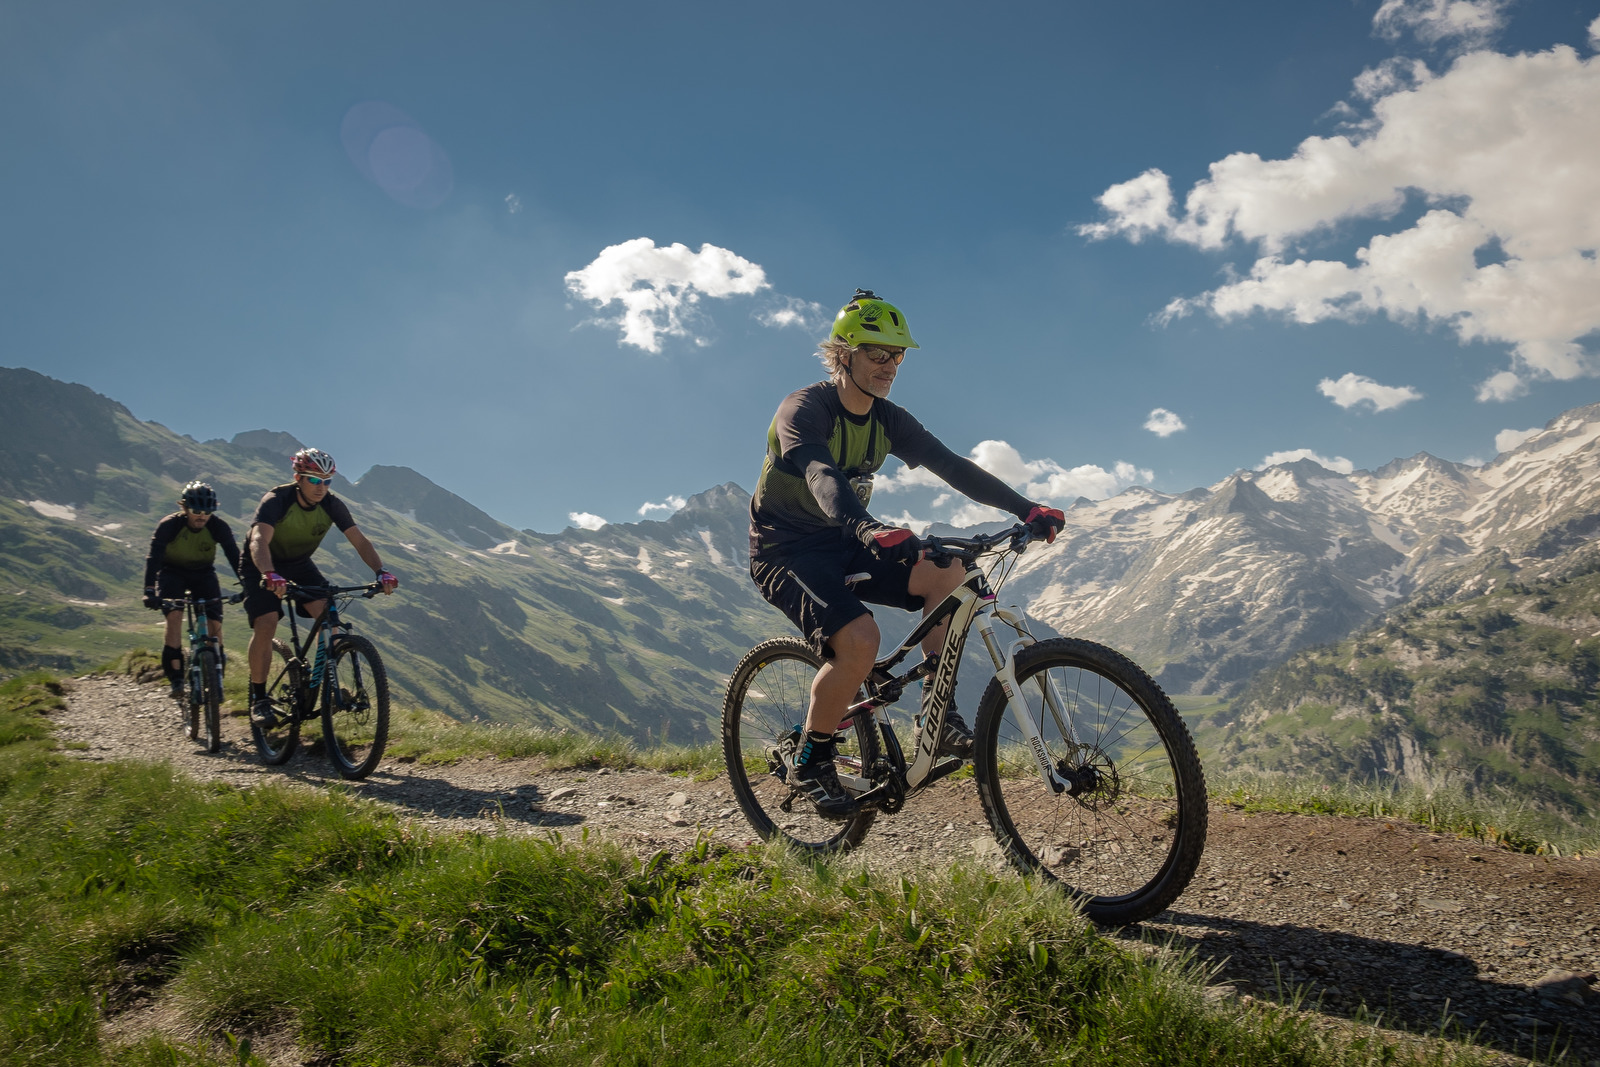 Viaje All Mountain – Benasque, el valle escondido